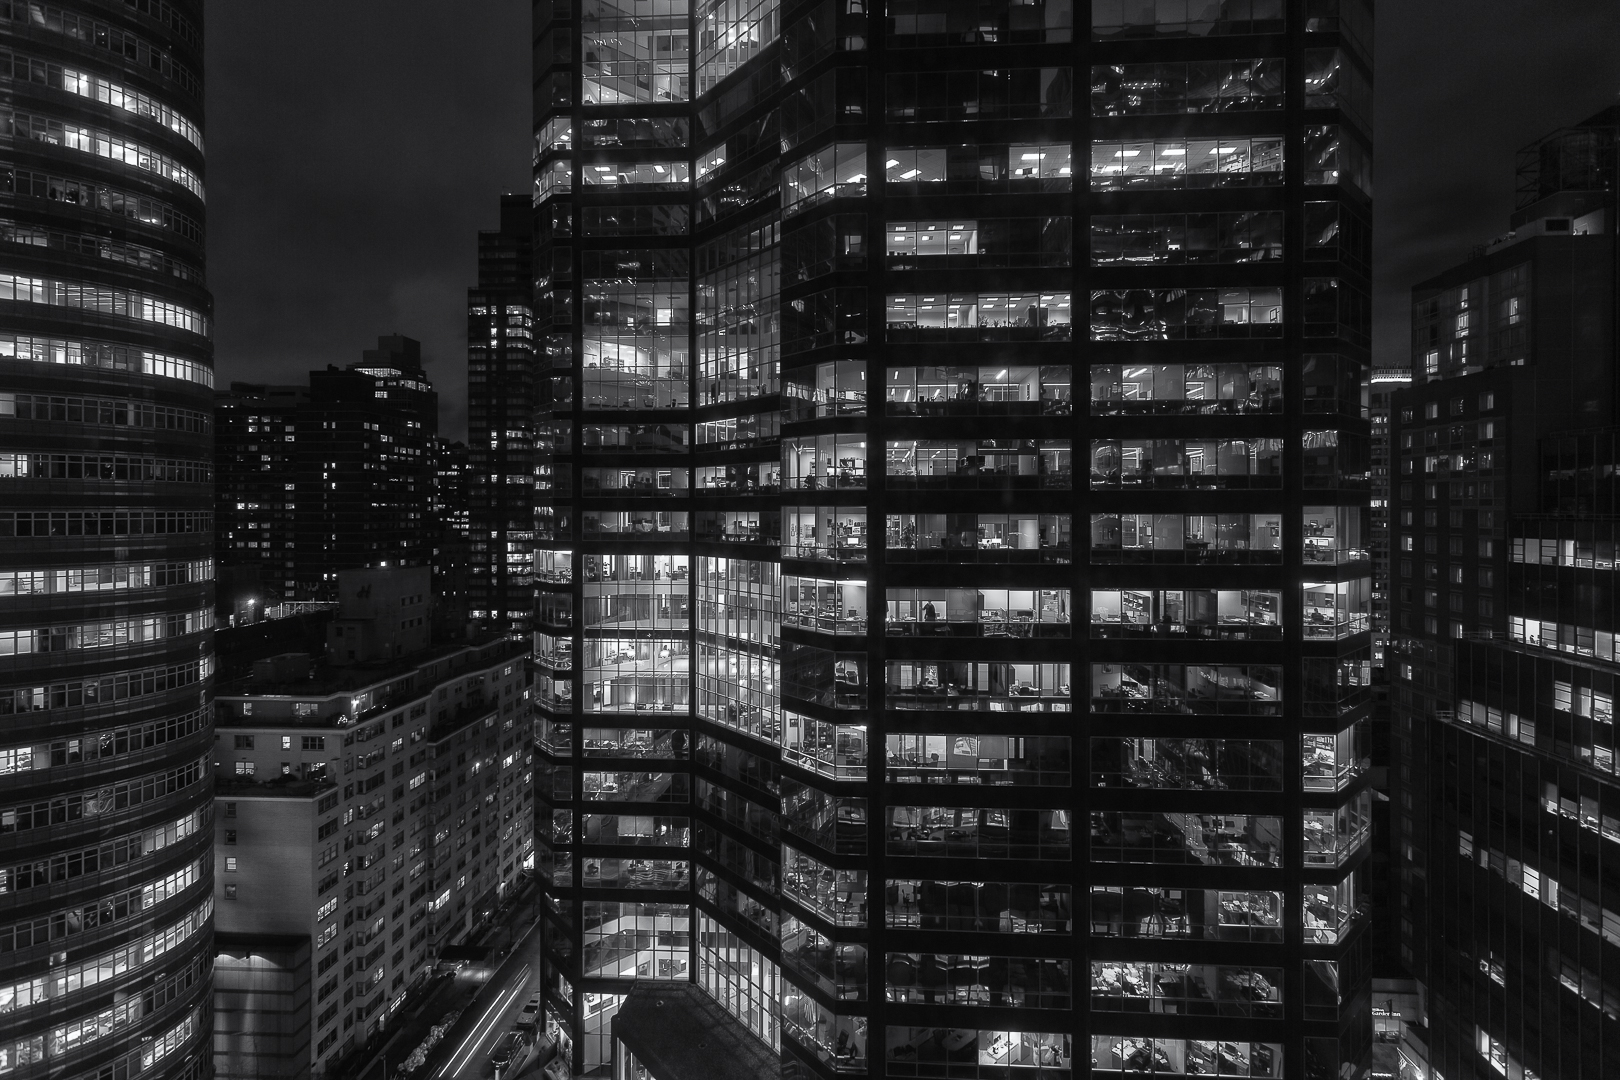 Buildings at night in New York City. Night time exterior view of a building. Buildings with lights on in many windows. Black and white photography.